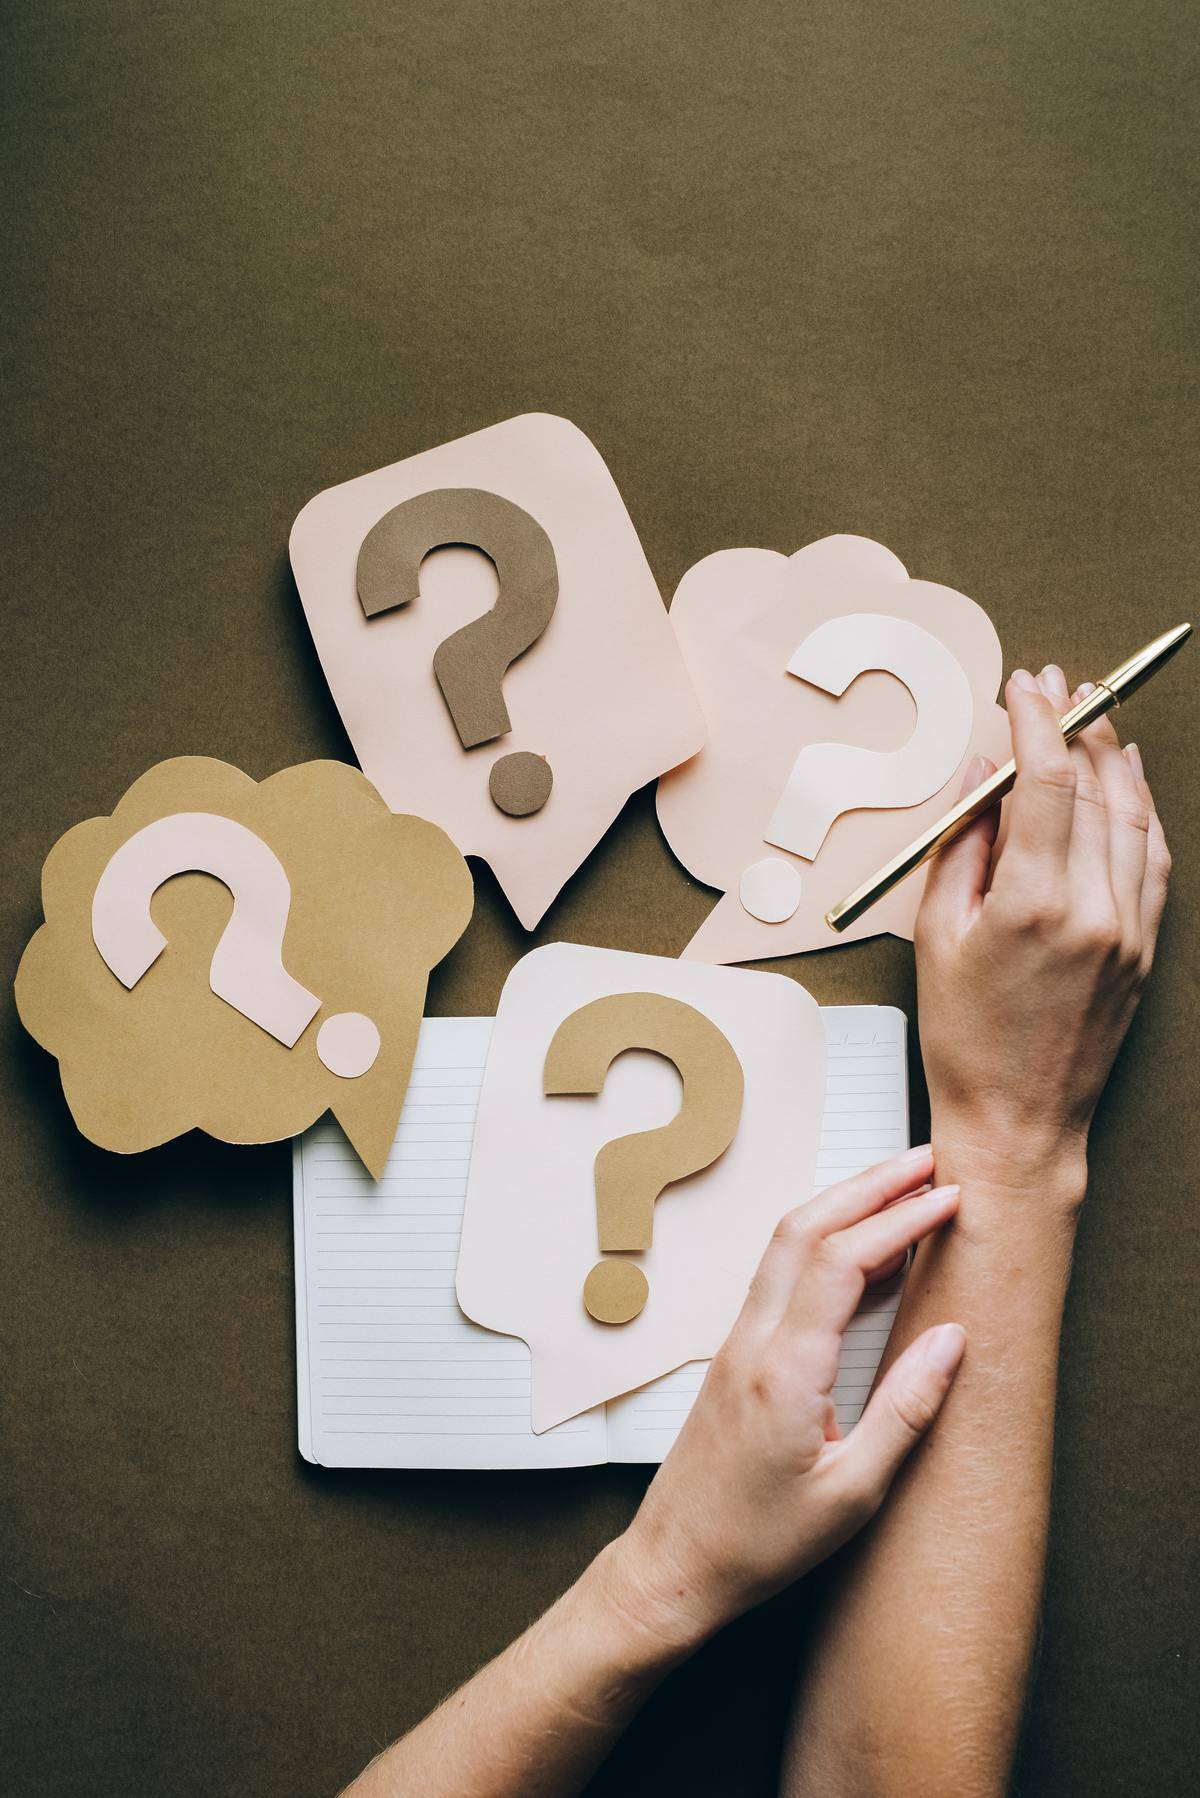 Person holds a pen while there are cutout question marks on the table